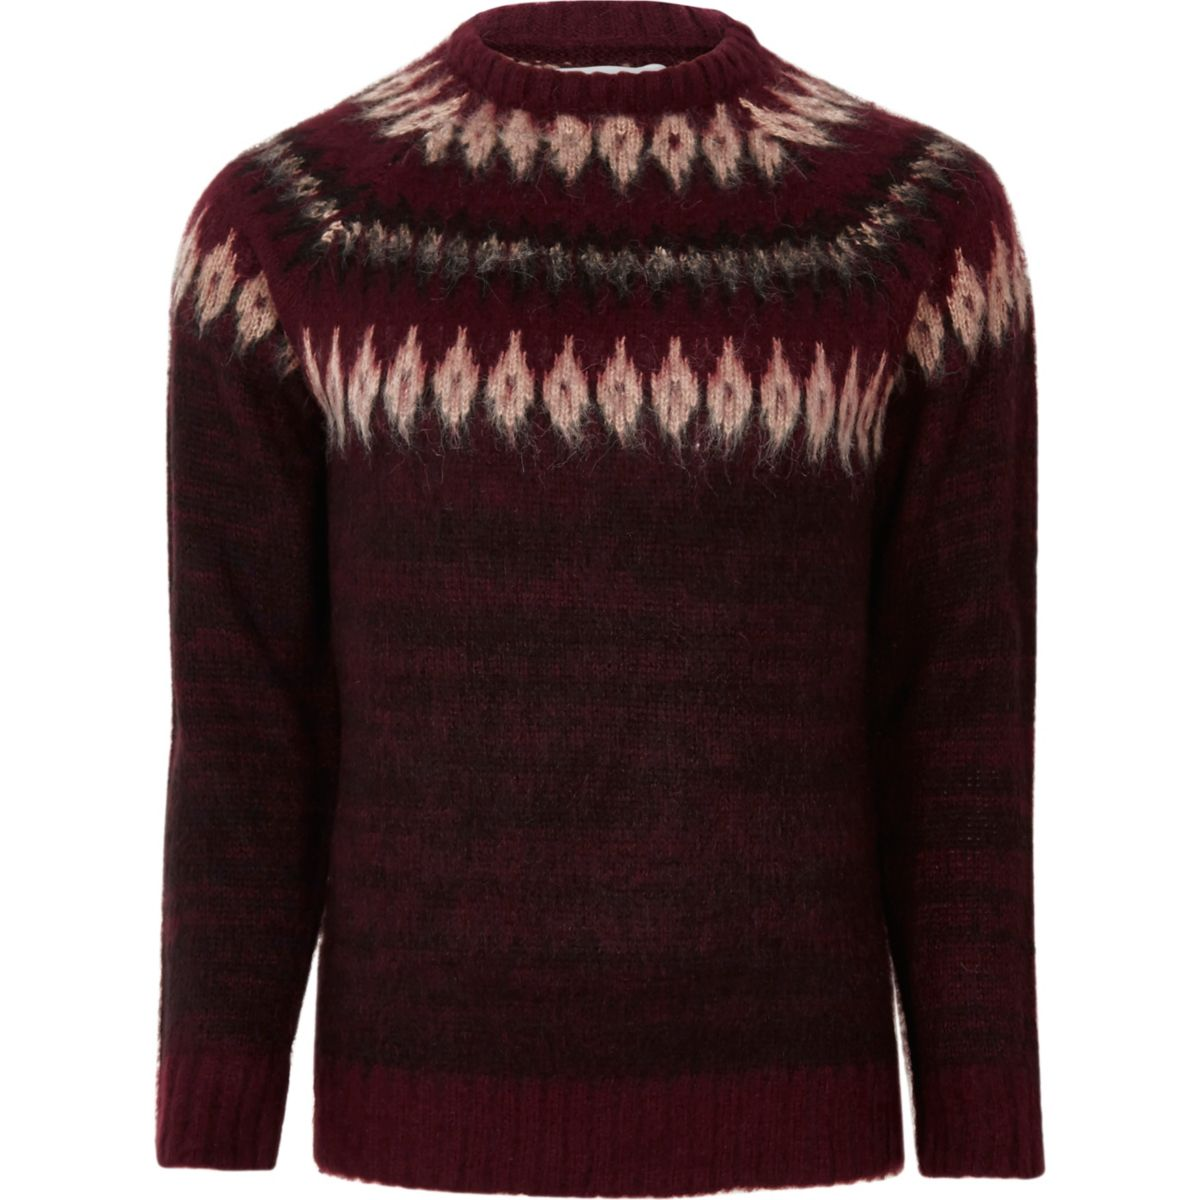 Burgundy Bellfield yoke design knit sweater